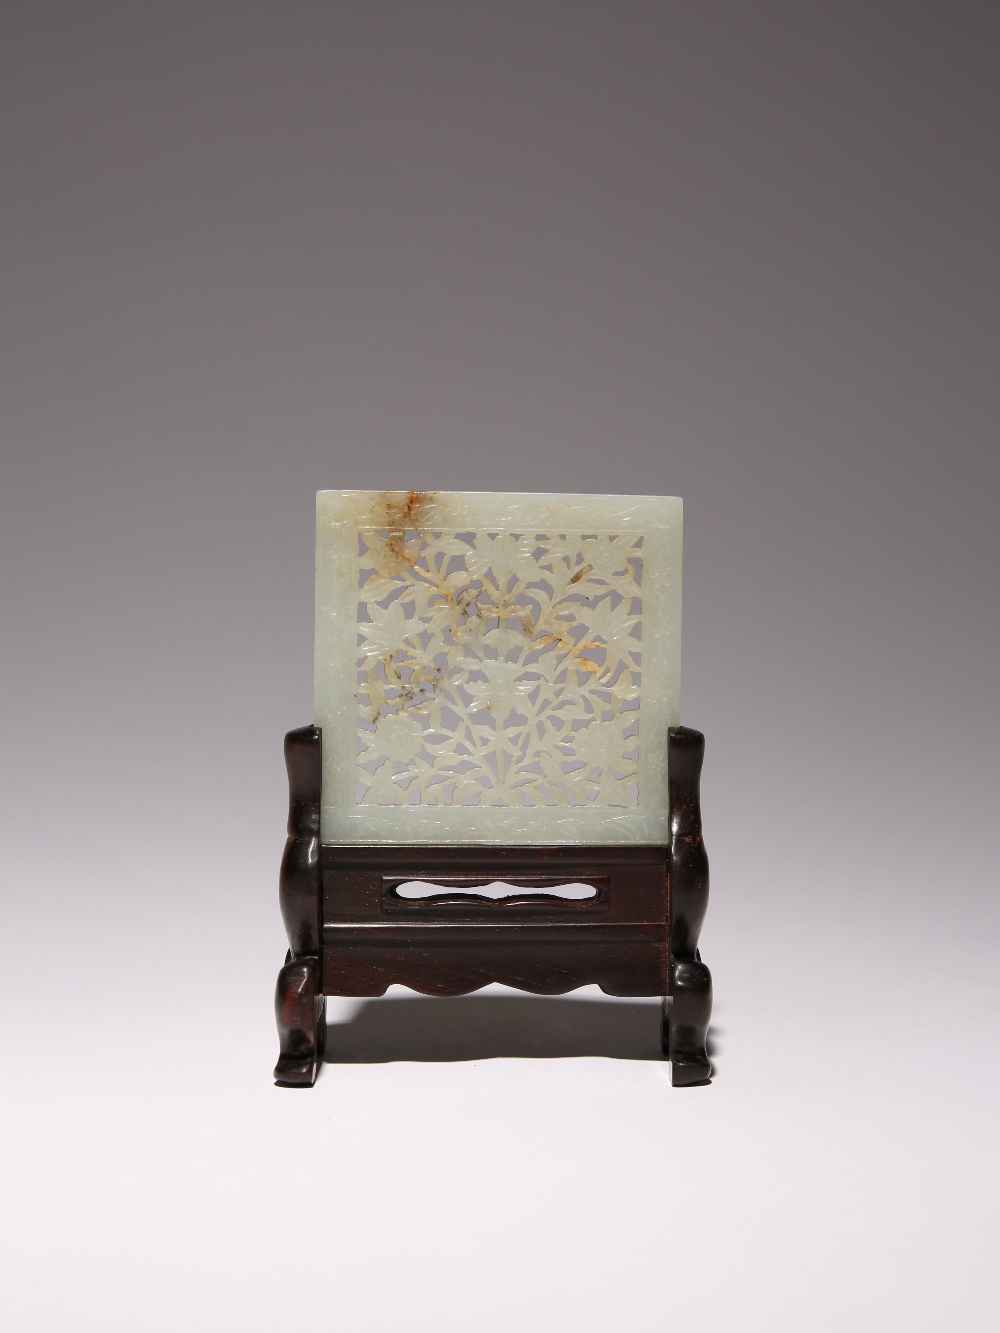 A CHINESE PALE CELADON JADE RECTANGULAR PLAQUE QING DYNASTY OR LATER Carved in openwork with